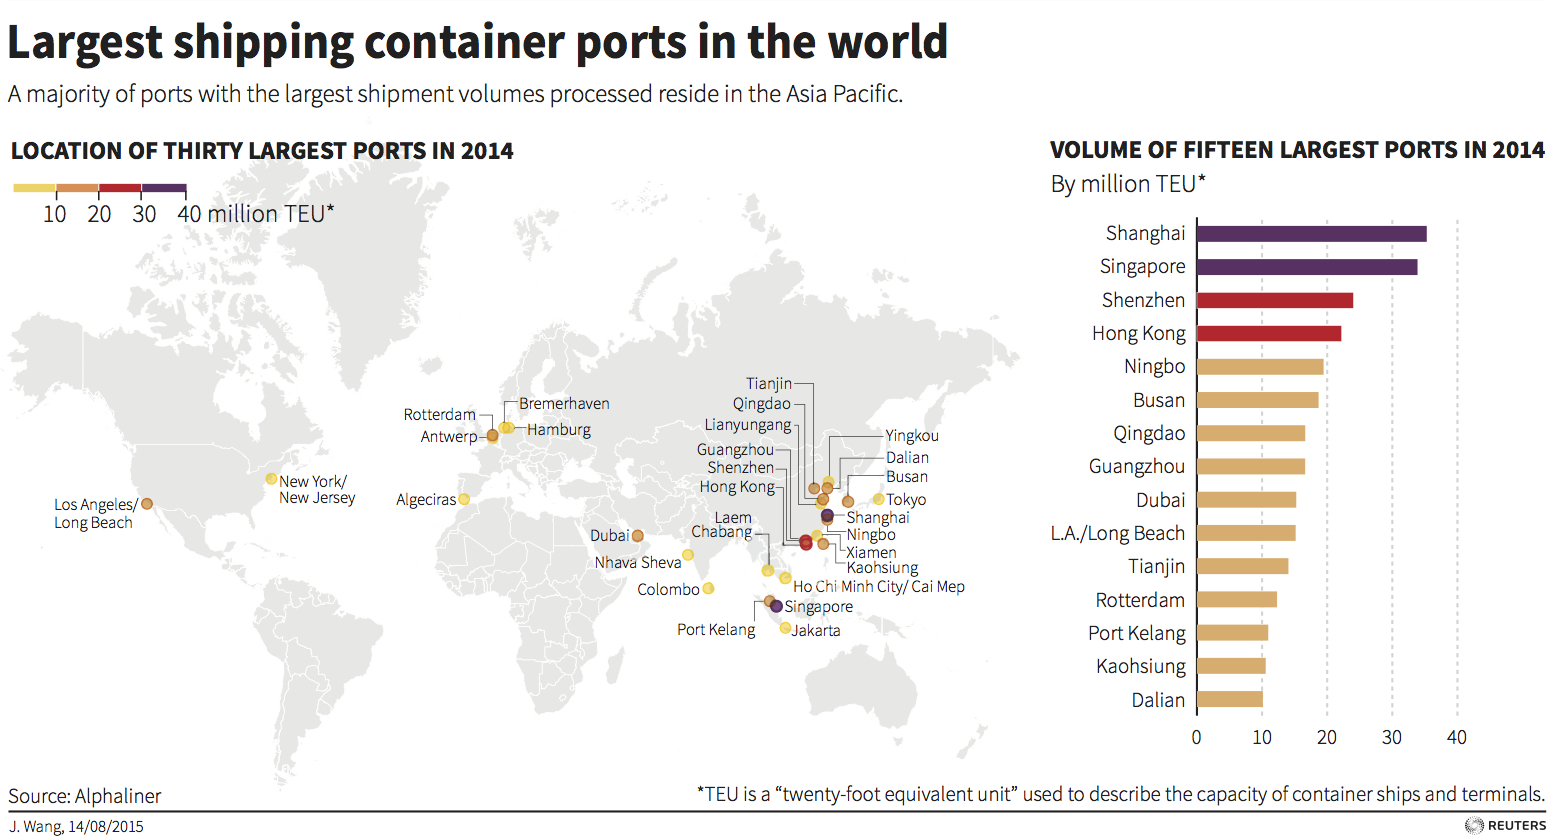 Major Shipping Container Ports By Shipment Volume